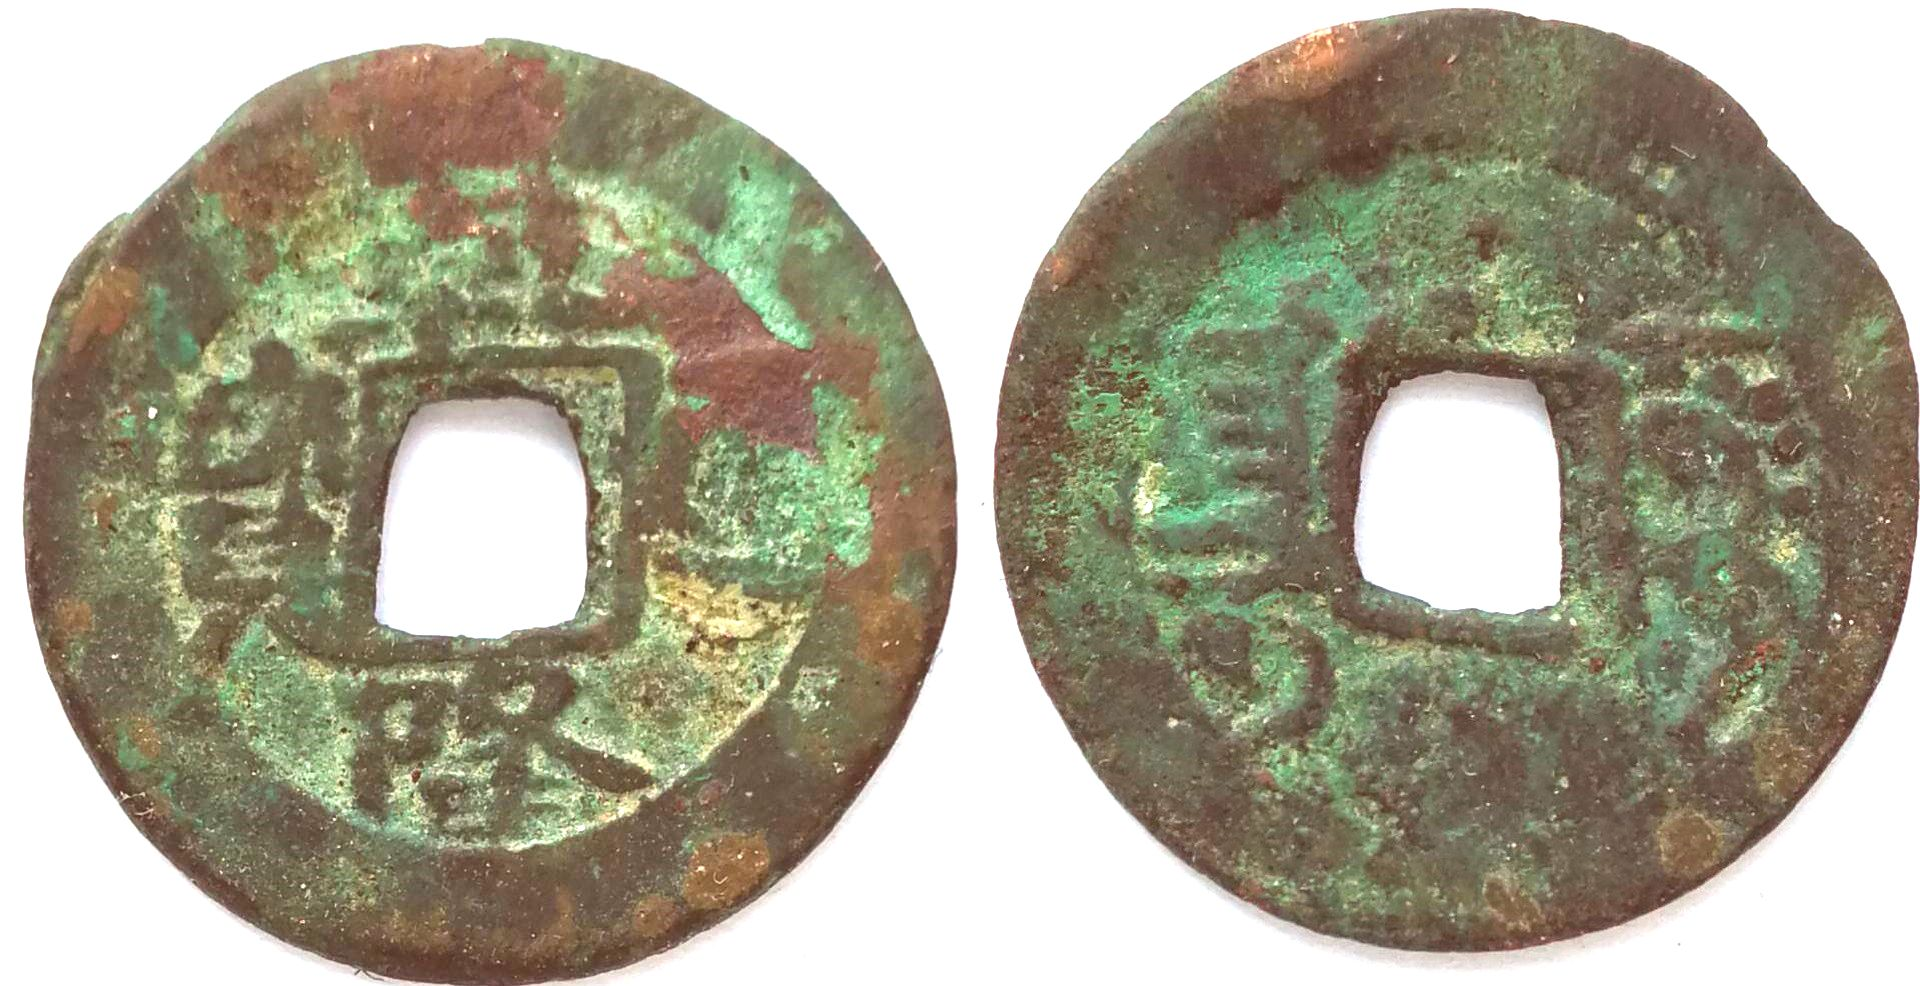 XJ2015, Sinkiang Red Coin, Qian-Long Tong-Bao, Aksu Mint, China 1761-1766